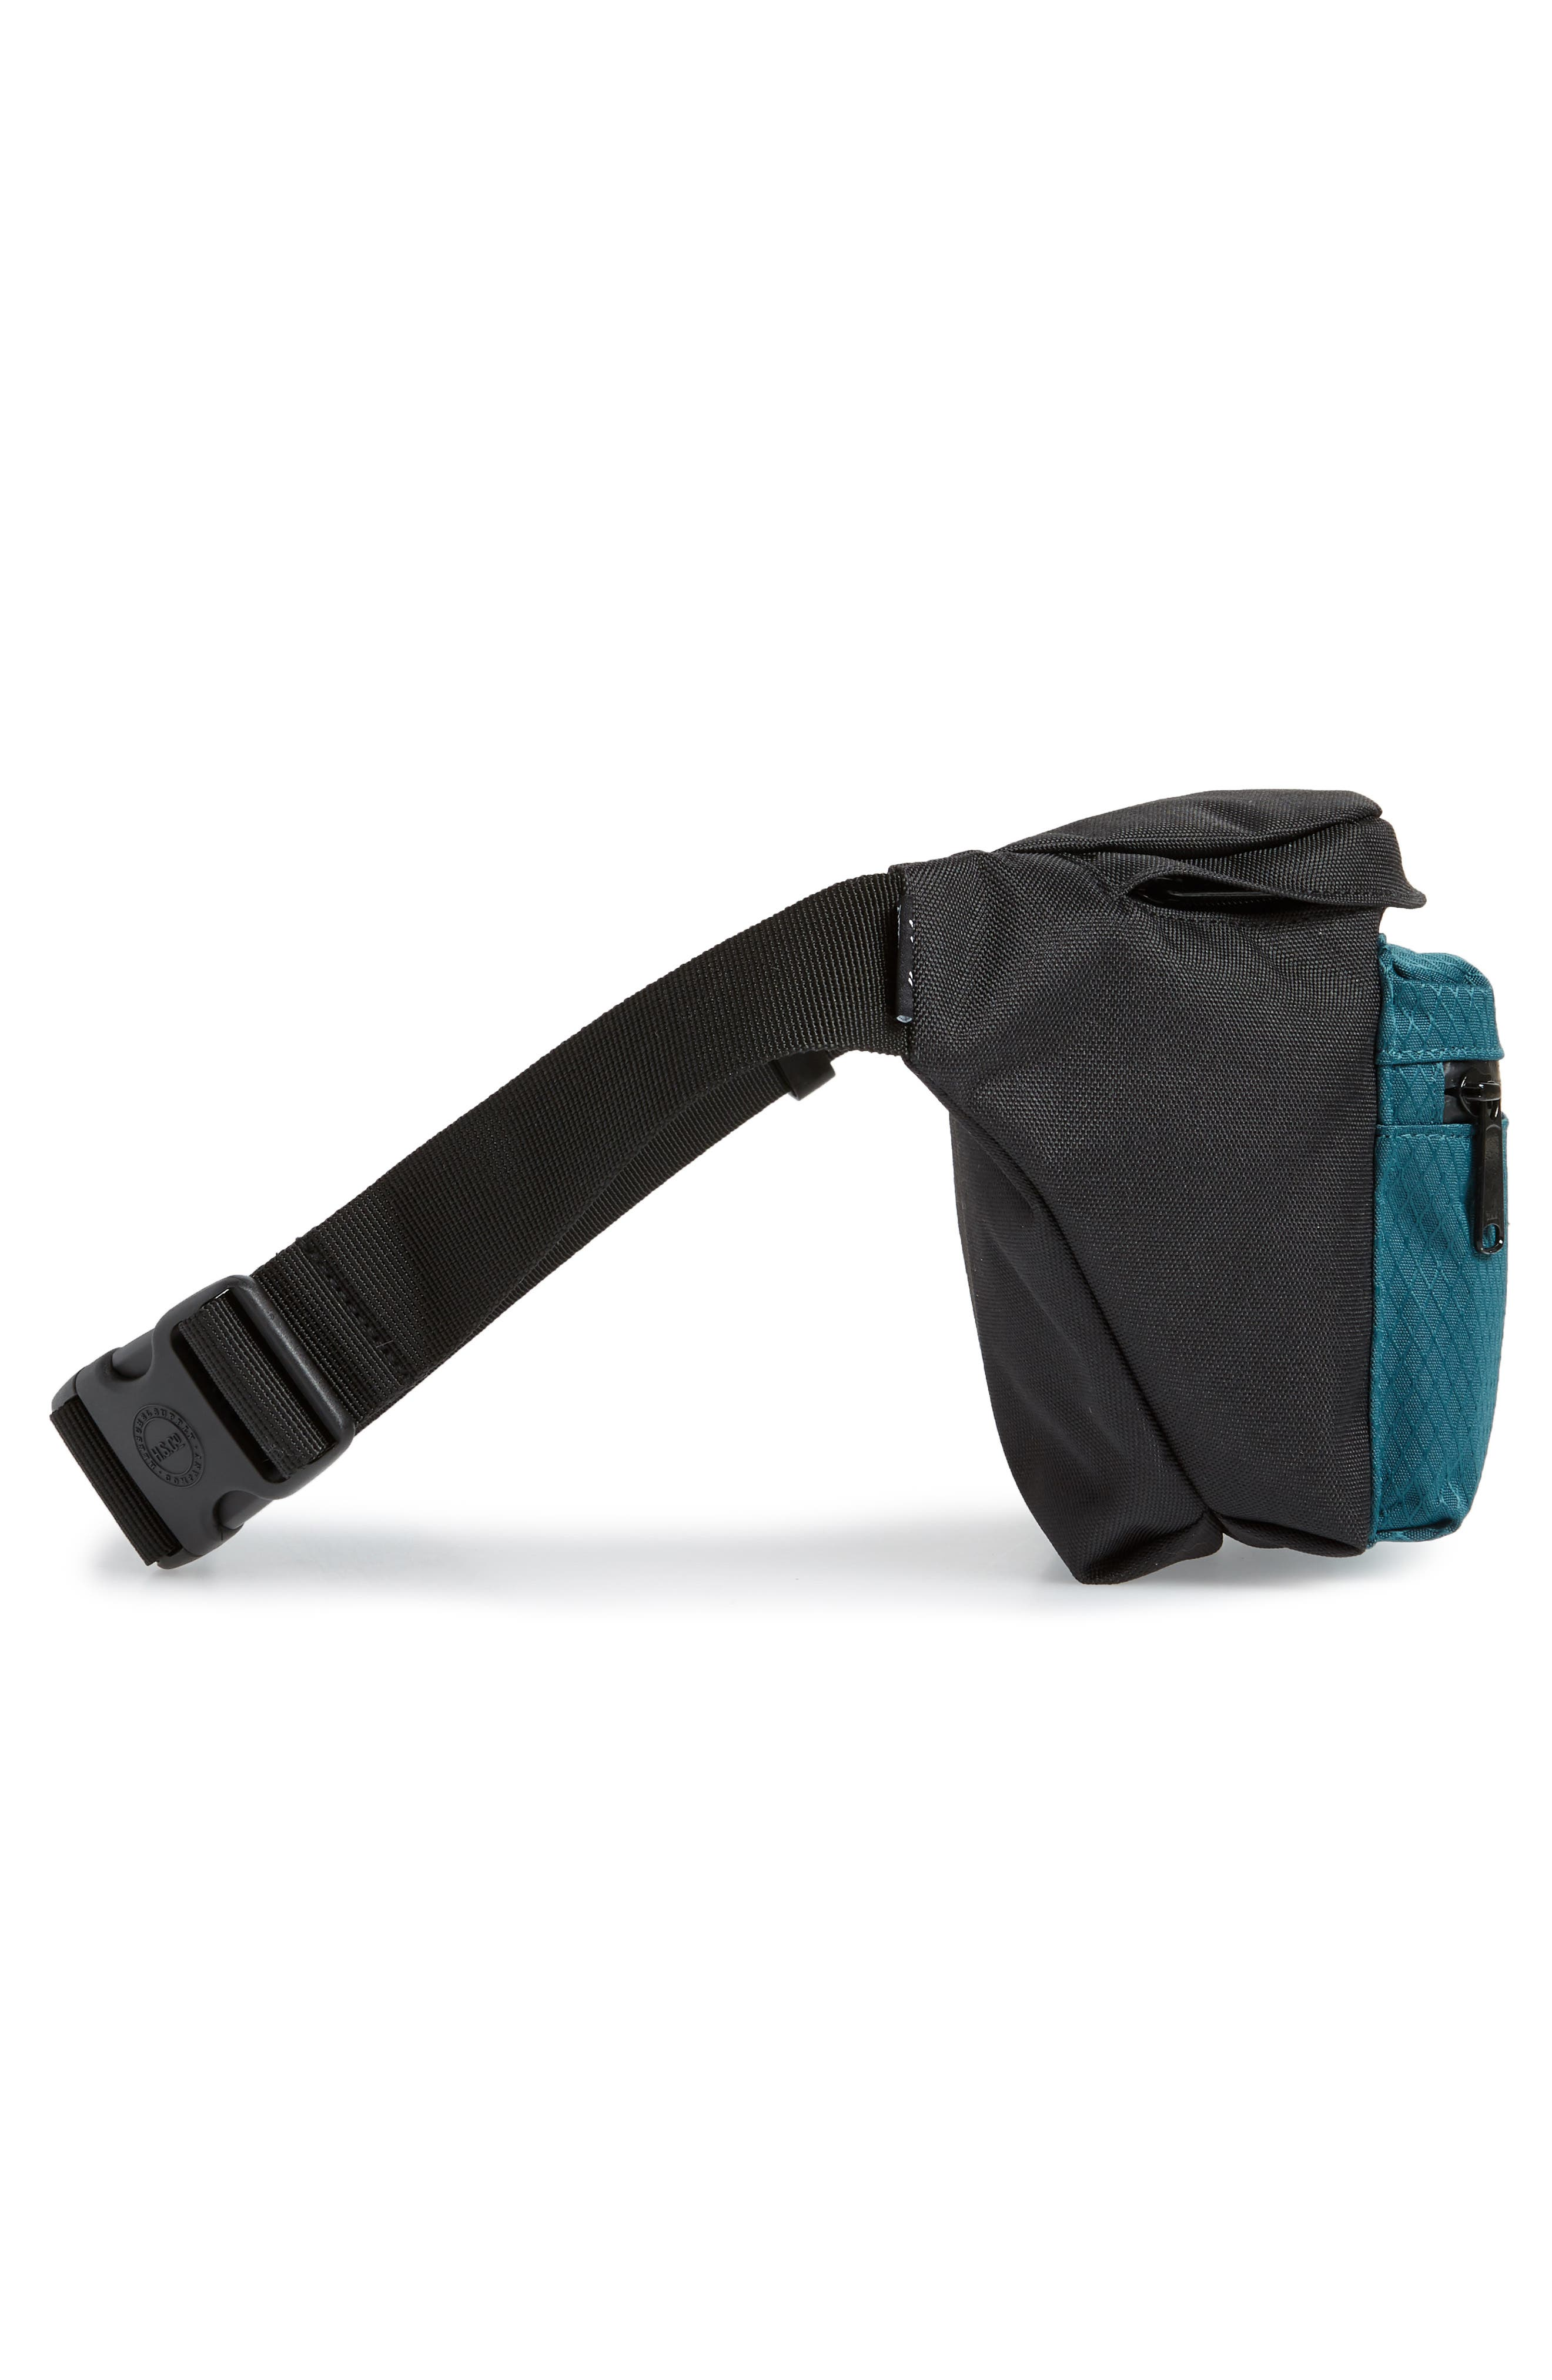 'Seventeen' Belt Bag,                             Alternate thumbnail 6, color,                             BLACK/ DEEP TEAL